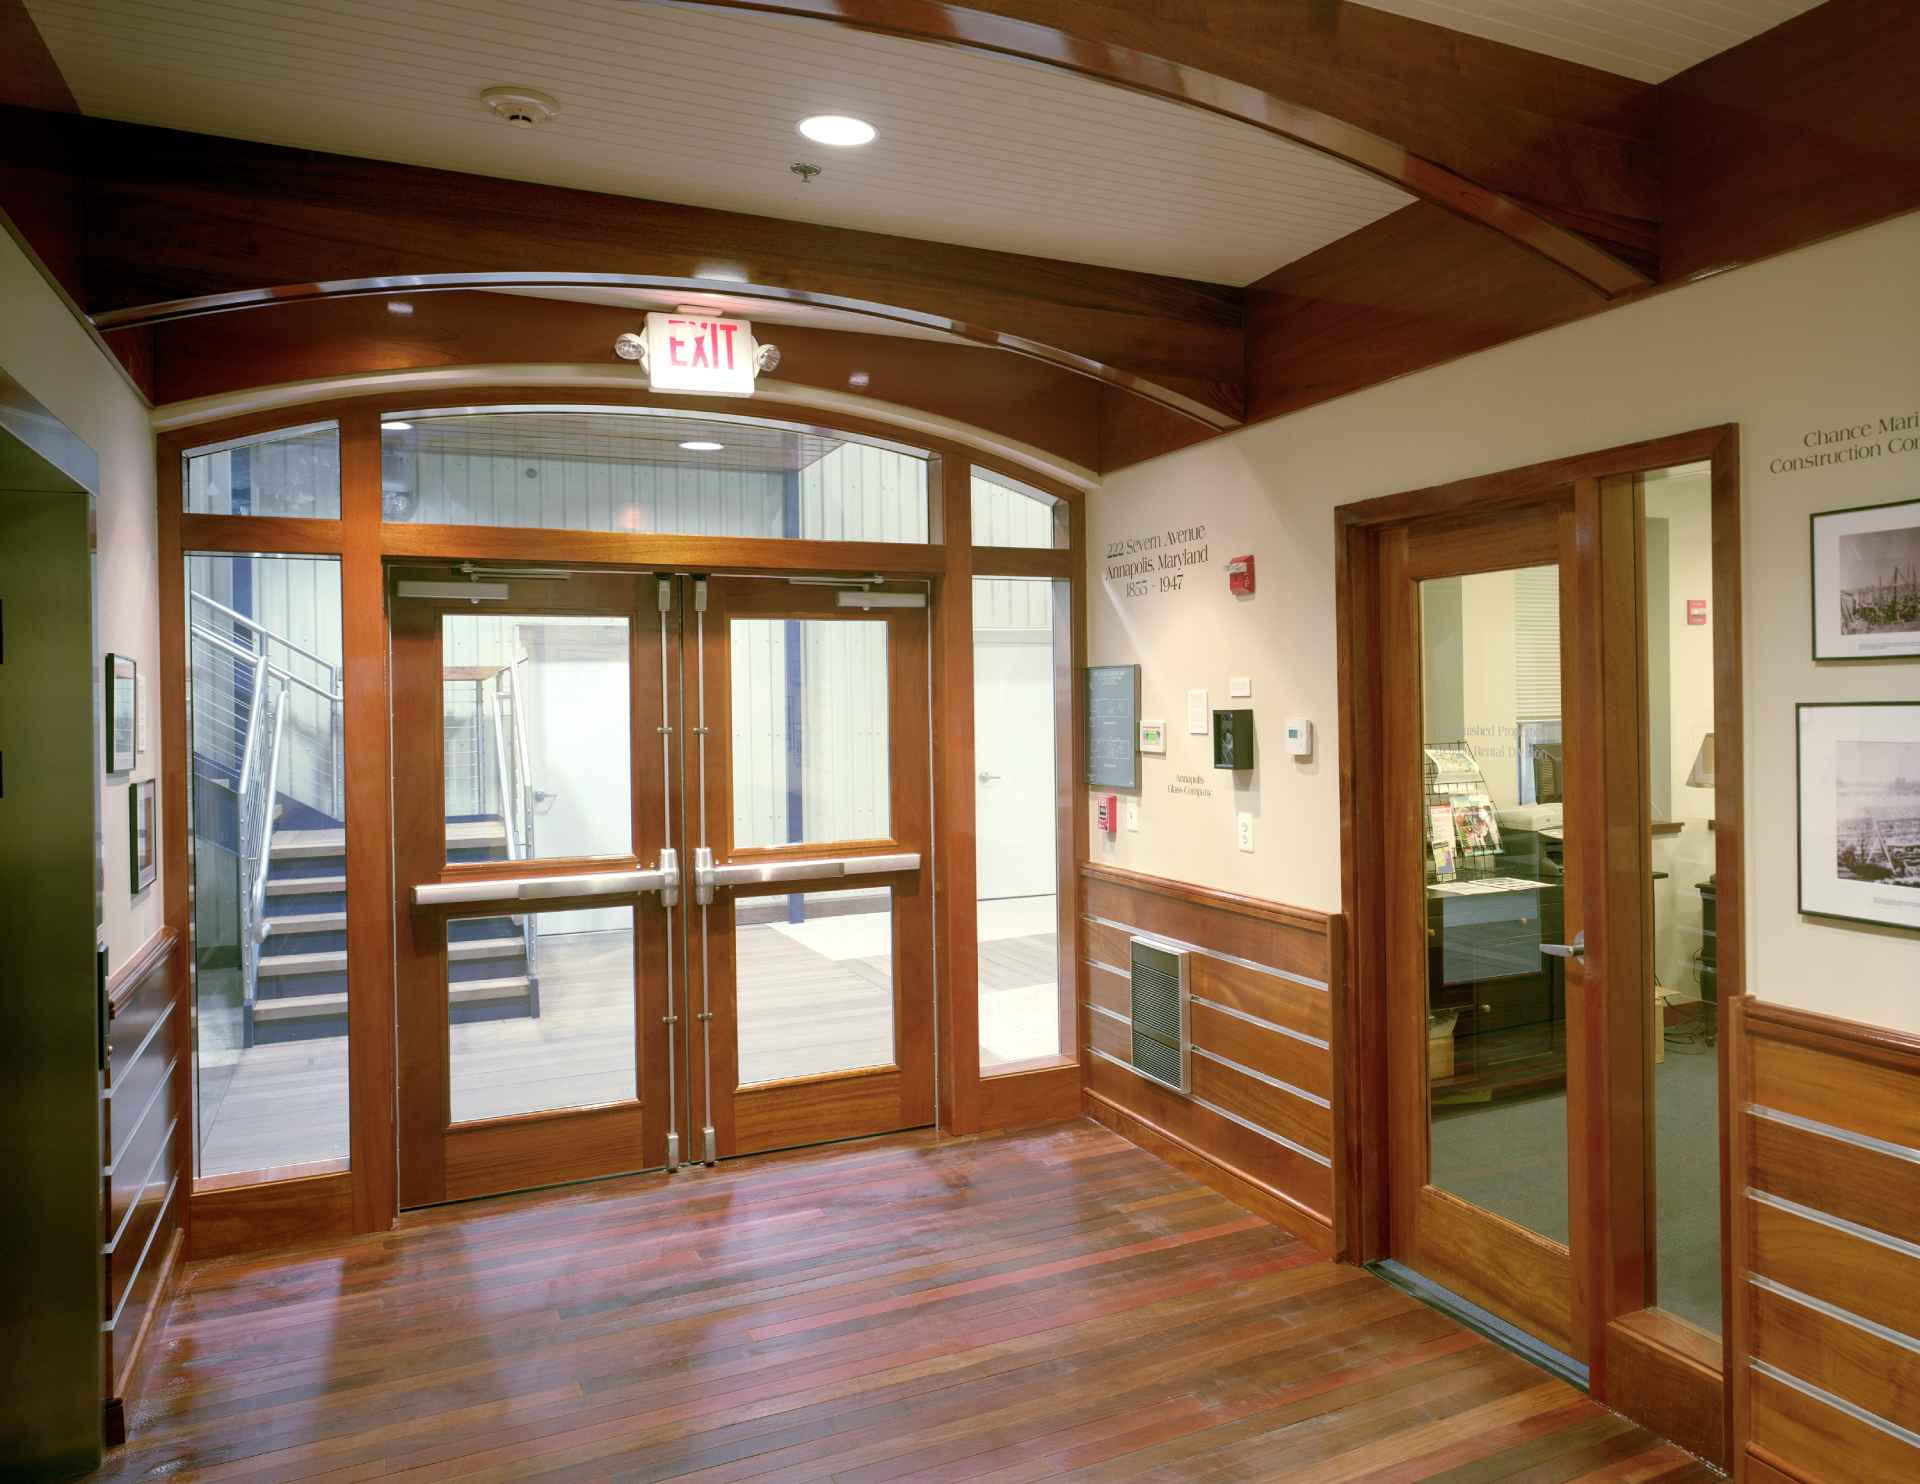 Beautiful 222 Severn Class A office lobby with mahogany interior and museum of Trumpy boat artifacts, located on the waterfront of Spa Creek in Annapolis Maryland.